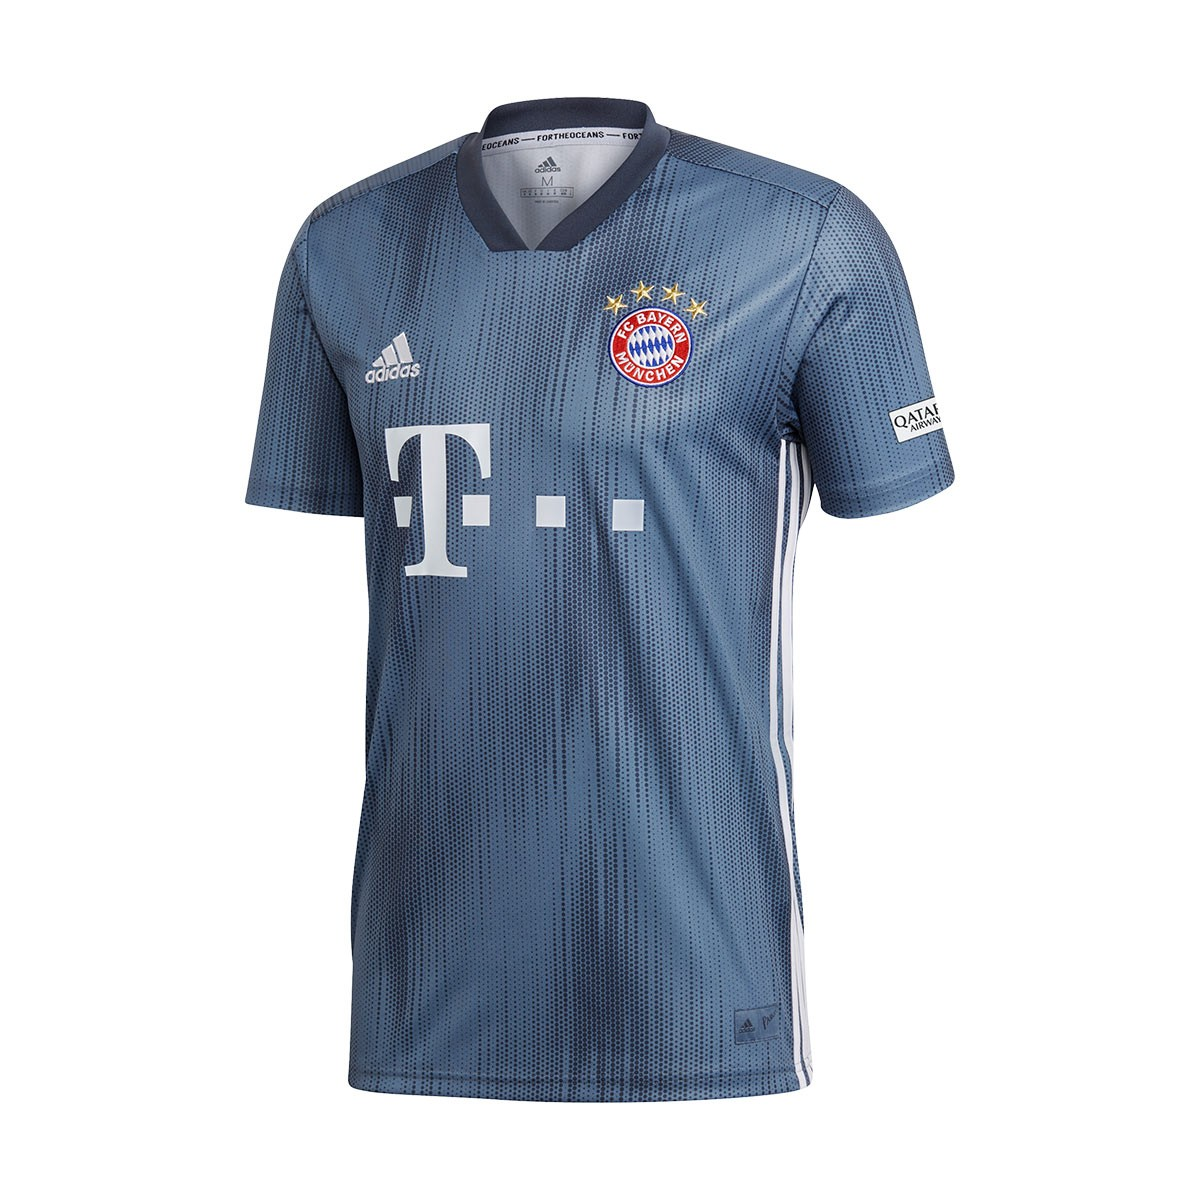 new product 46b46 e2df3 Camiseta FC Bayern Munich Tercera Equipación 2018-2019 Steel-Utility  blue-White